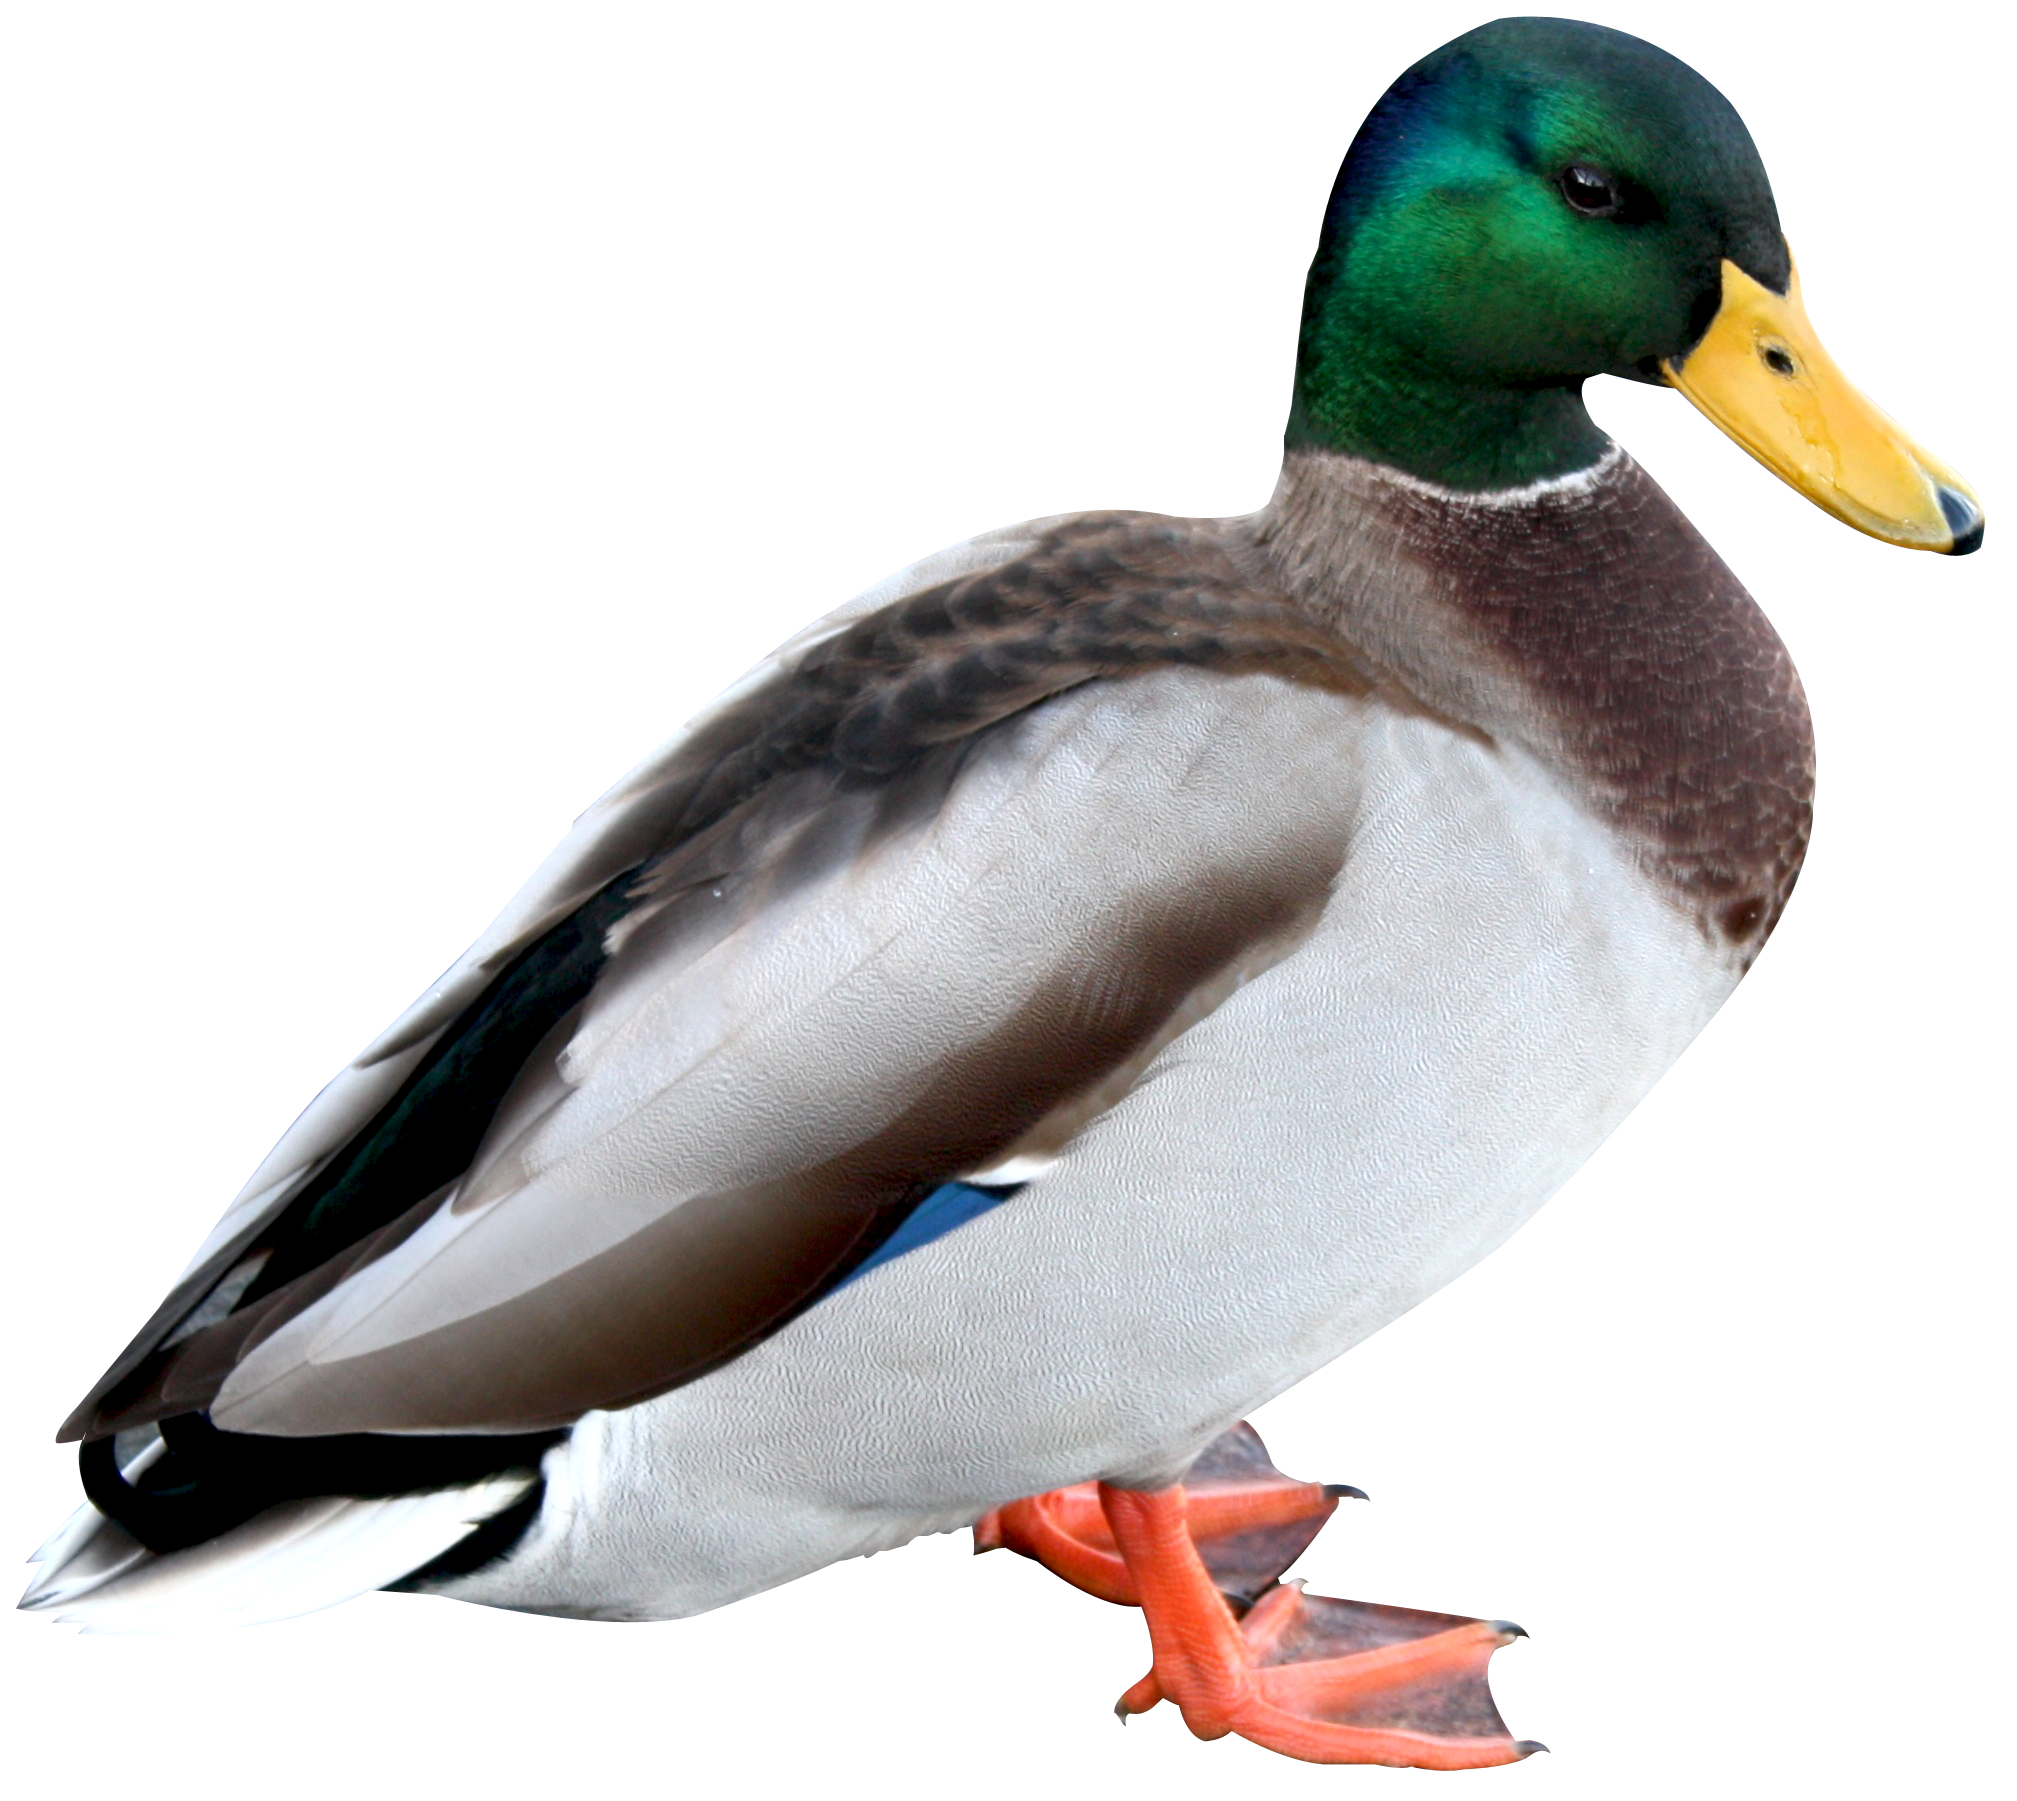 Hq png transparent images. Ducks clipart peking duck